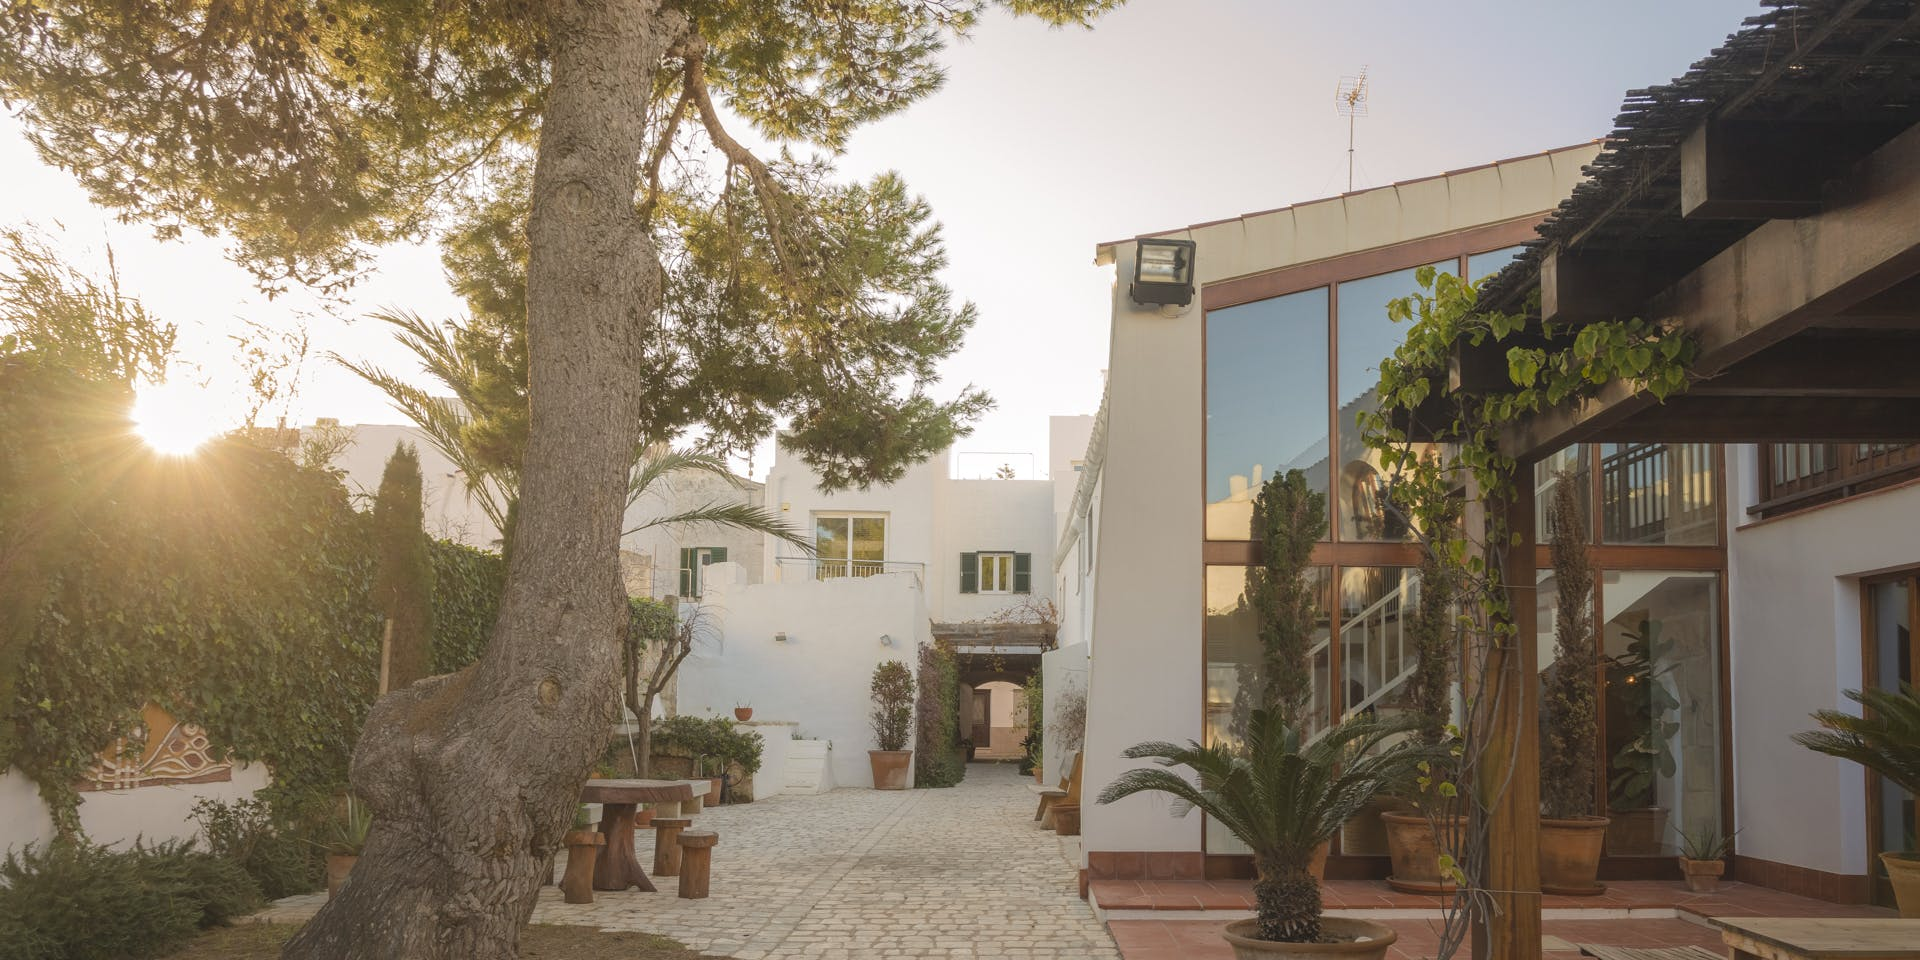 12 Residents   Menorca   Stunning Villa - Incl. Coworking + Lounge Areas